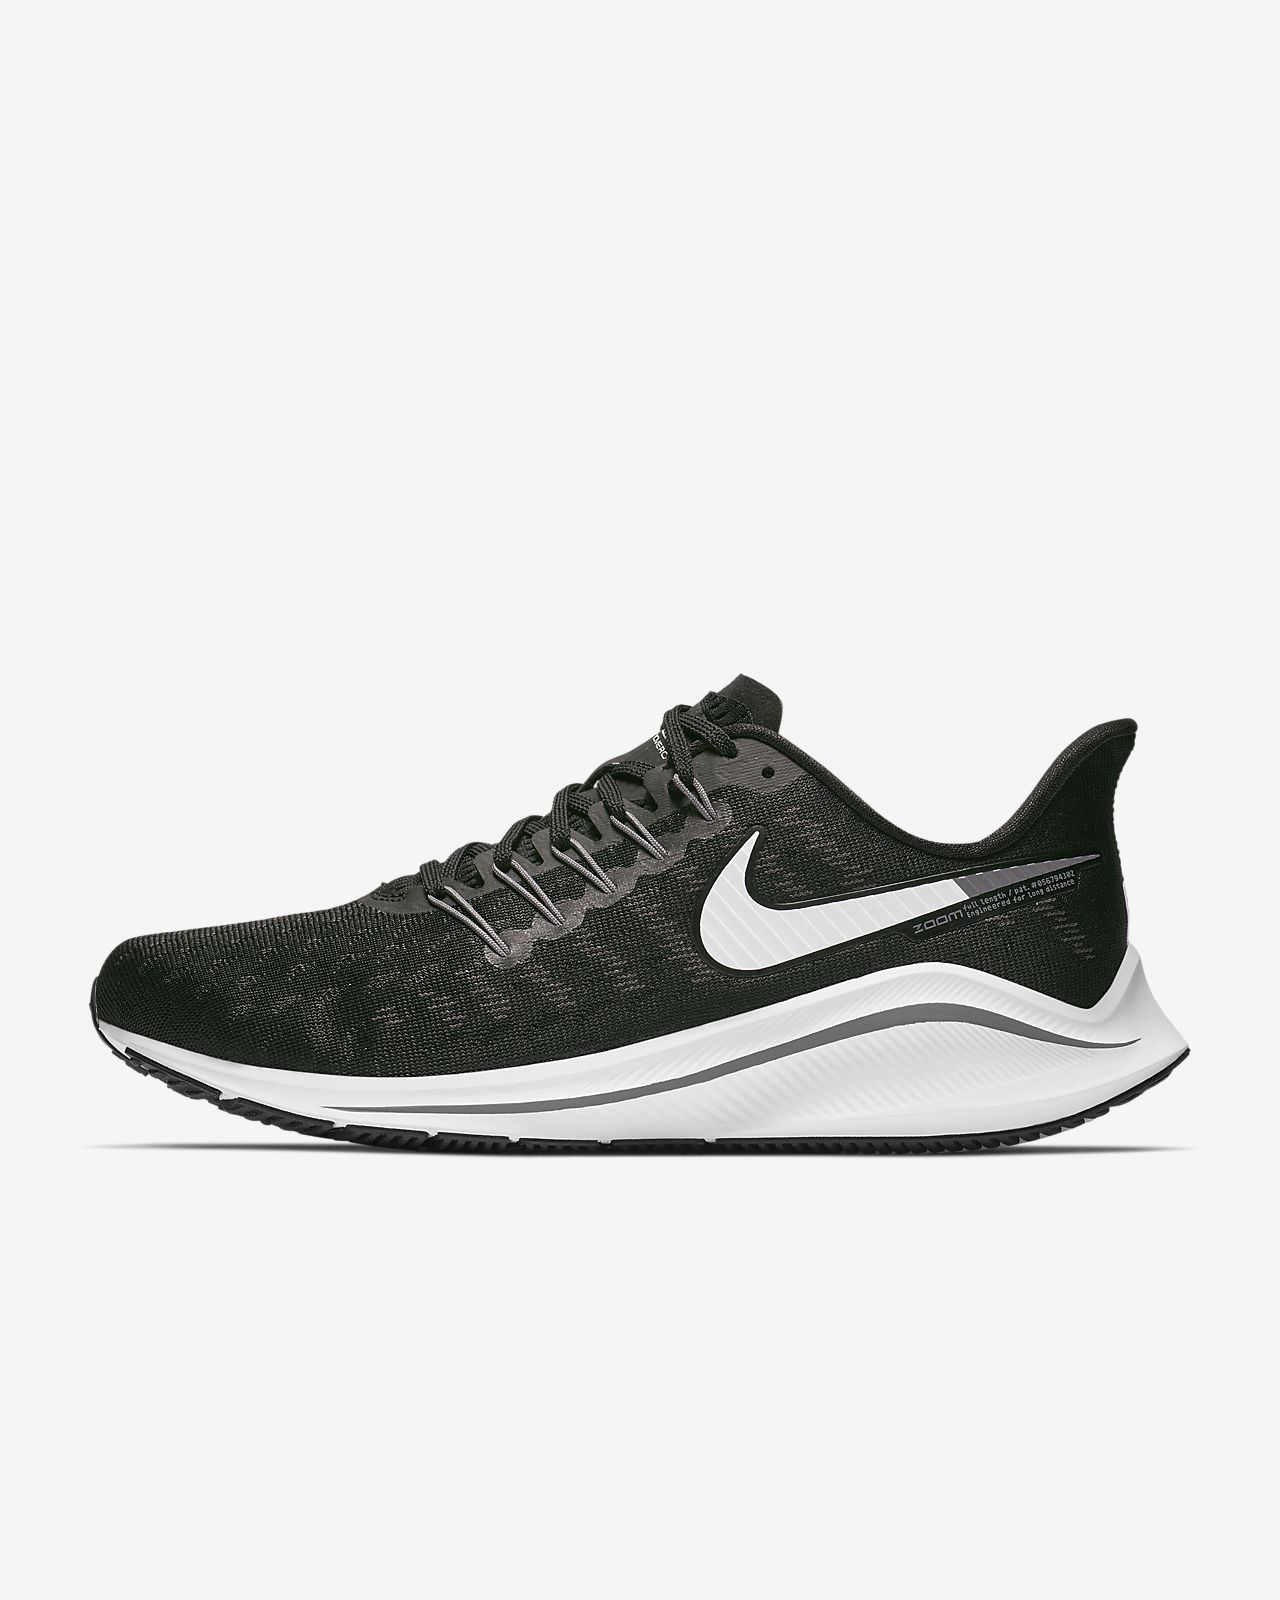 Nike Air Zoom Vomero 14 Men's Running Shoe (Extra-Wide)